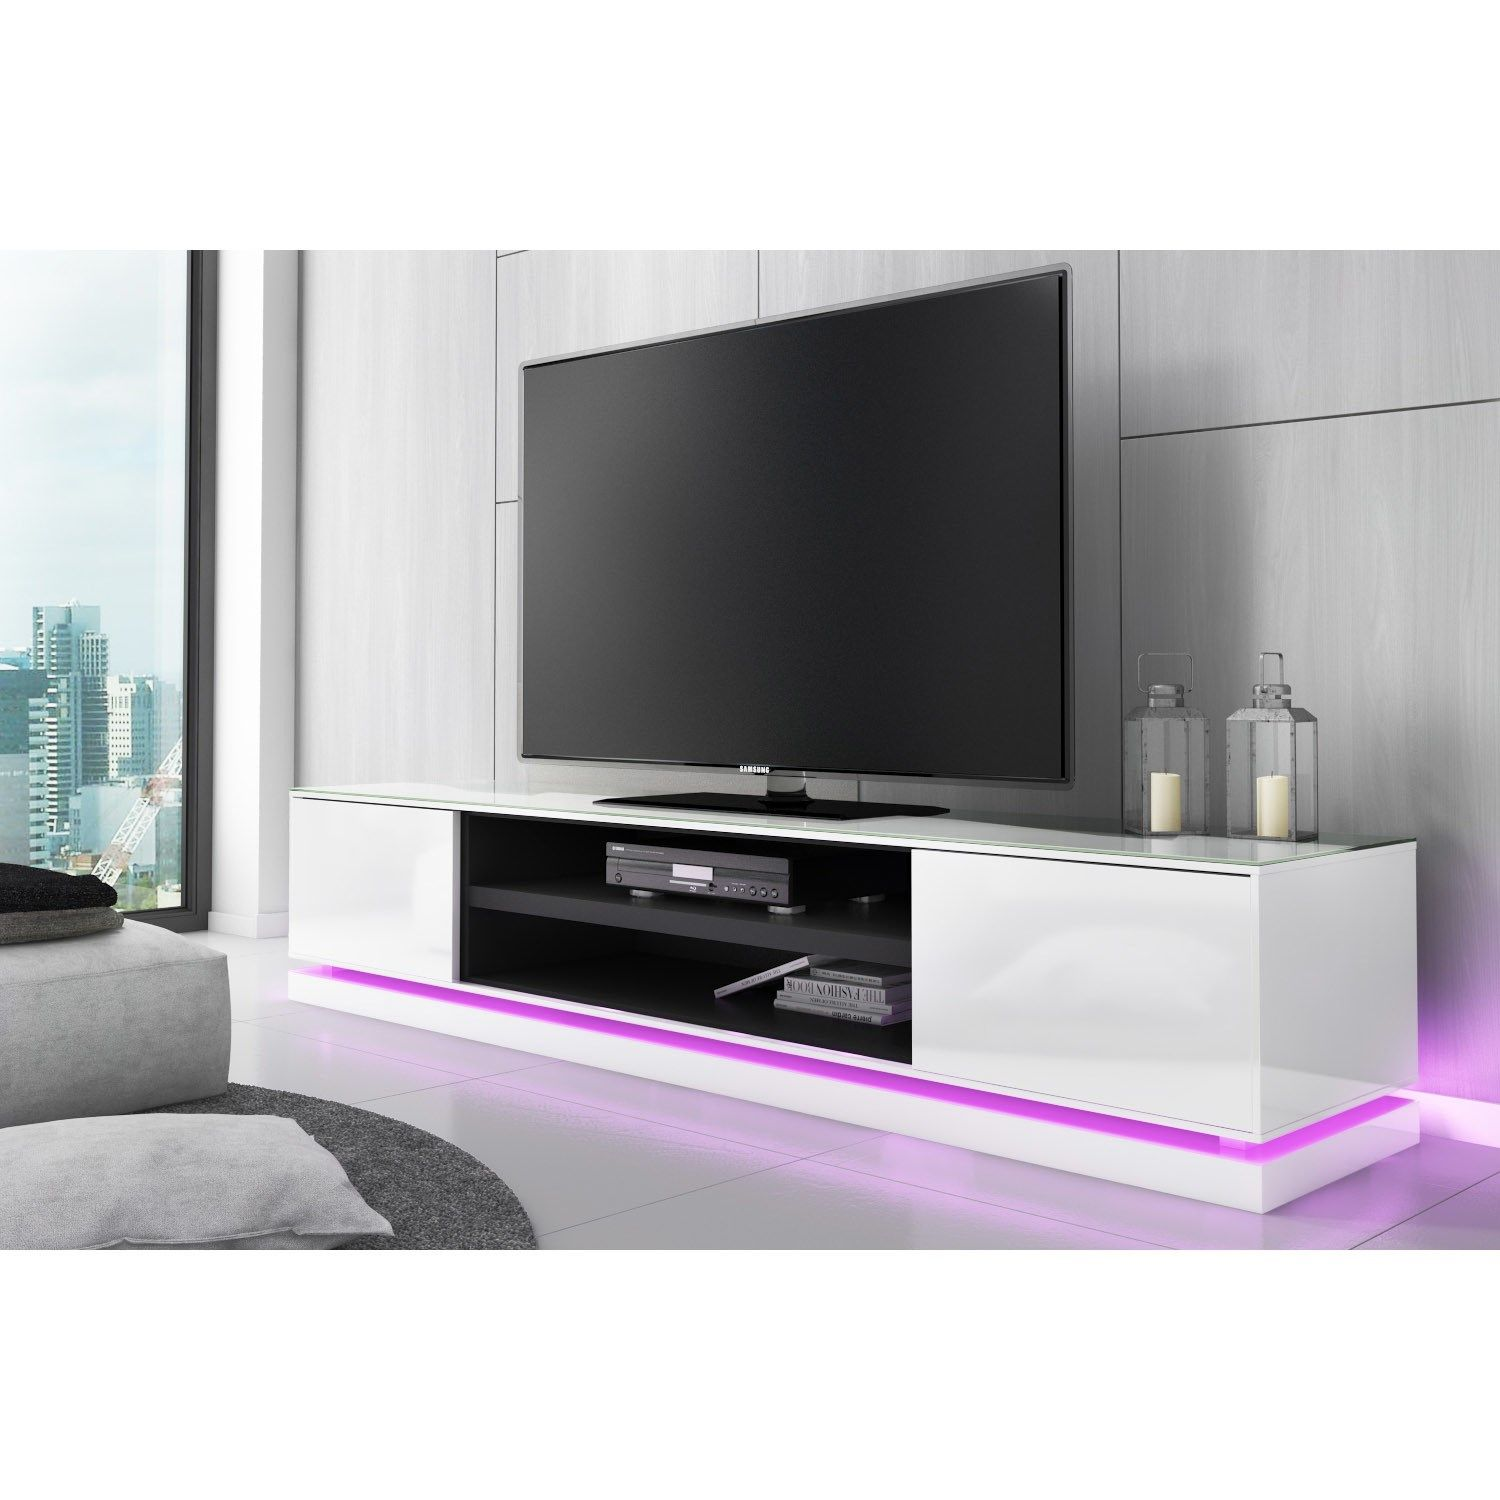 Add the wow factor to your living space with our EVOQUE TV